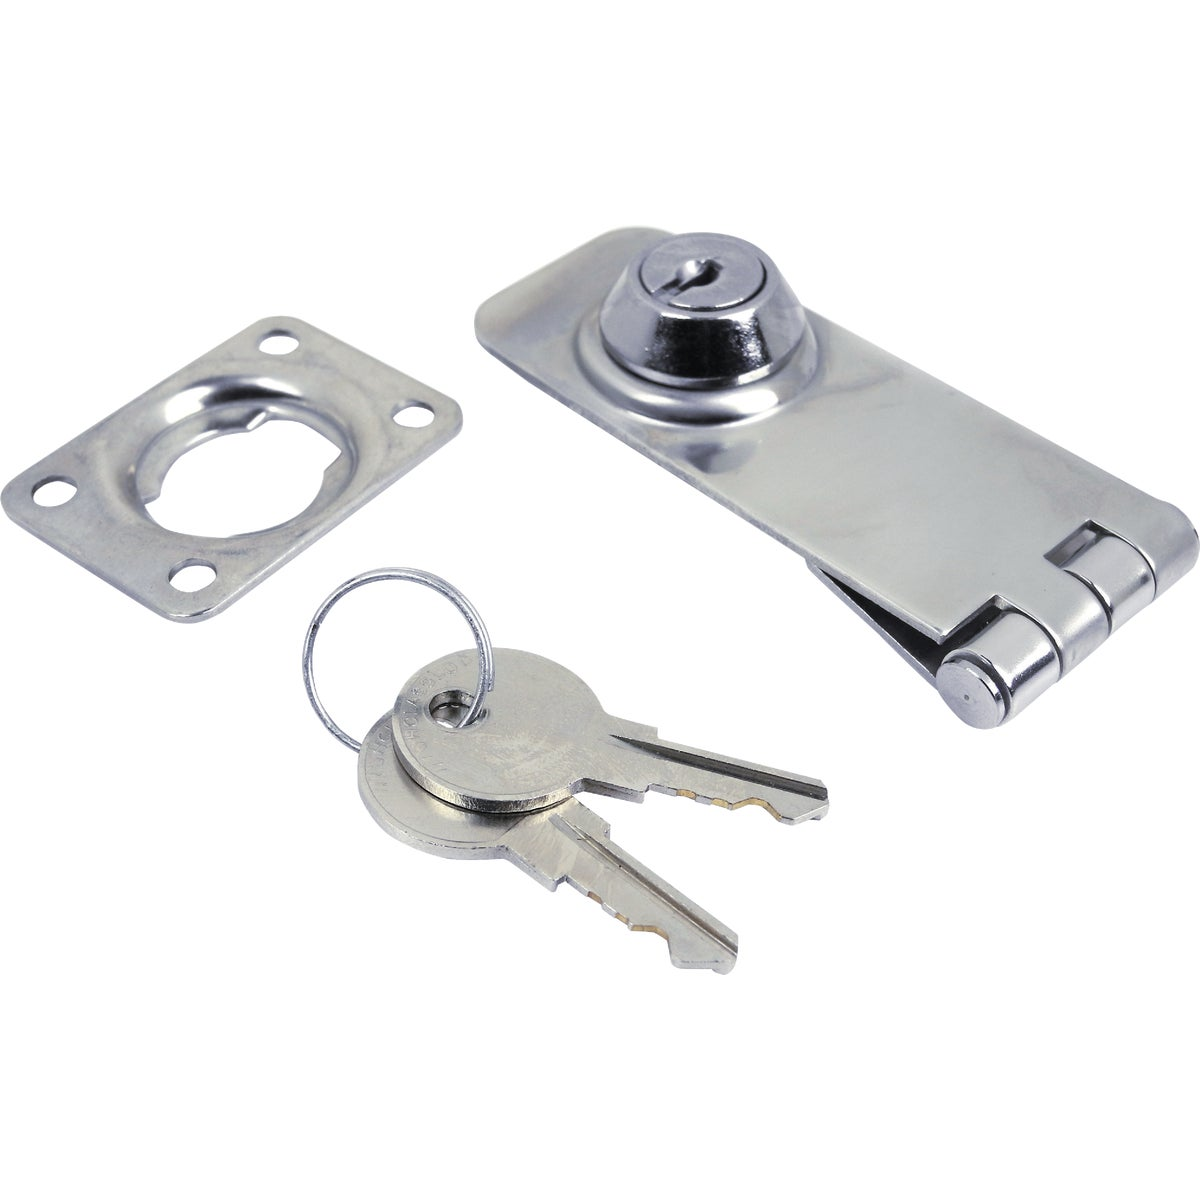 1-1/8X3 SS LOCKABLE HASP - 37031 by Seachoice Prod